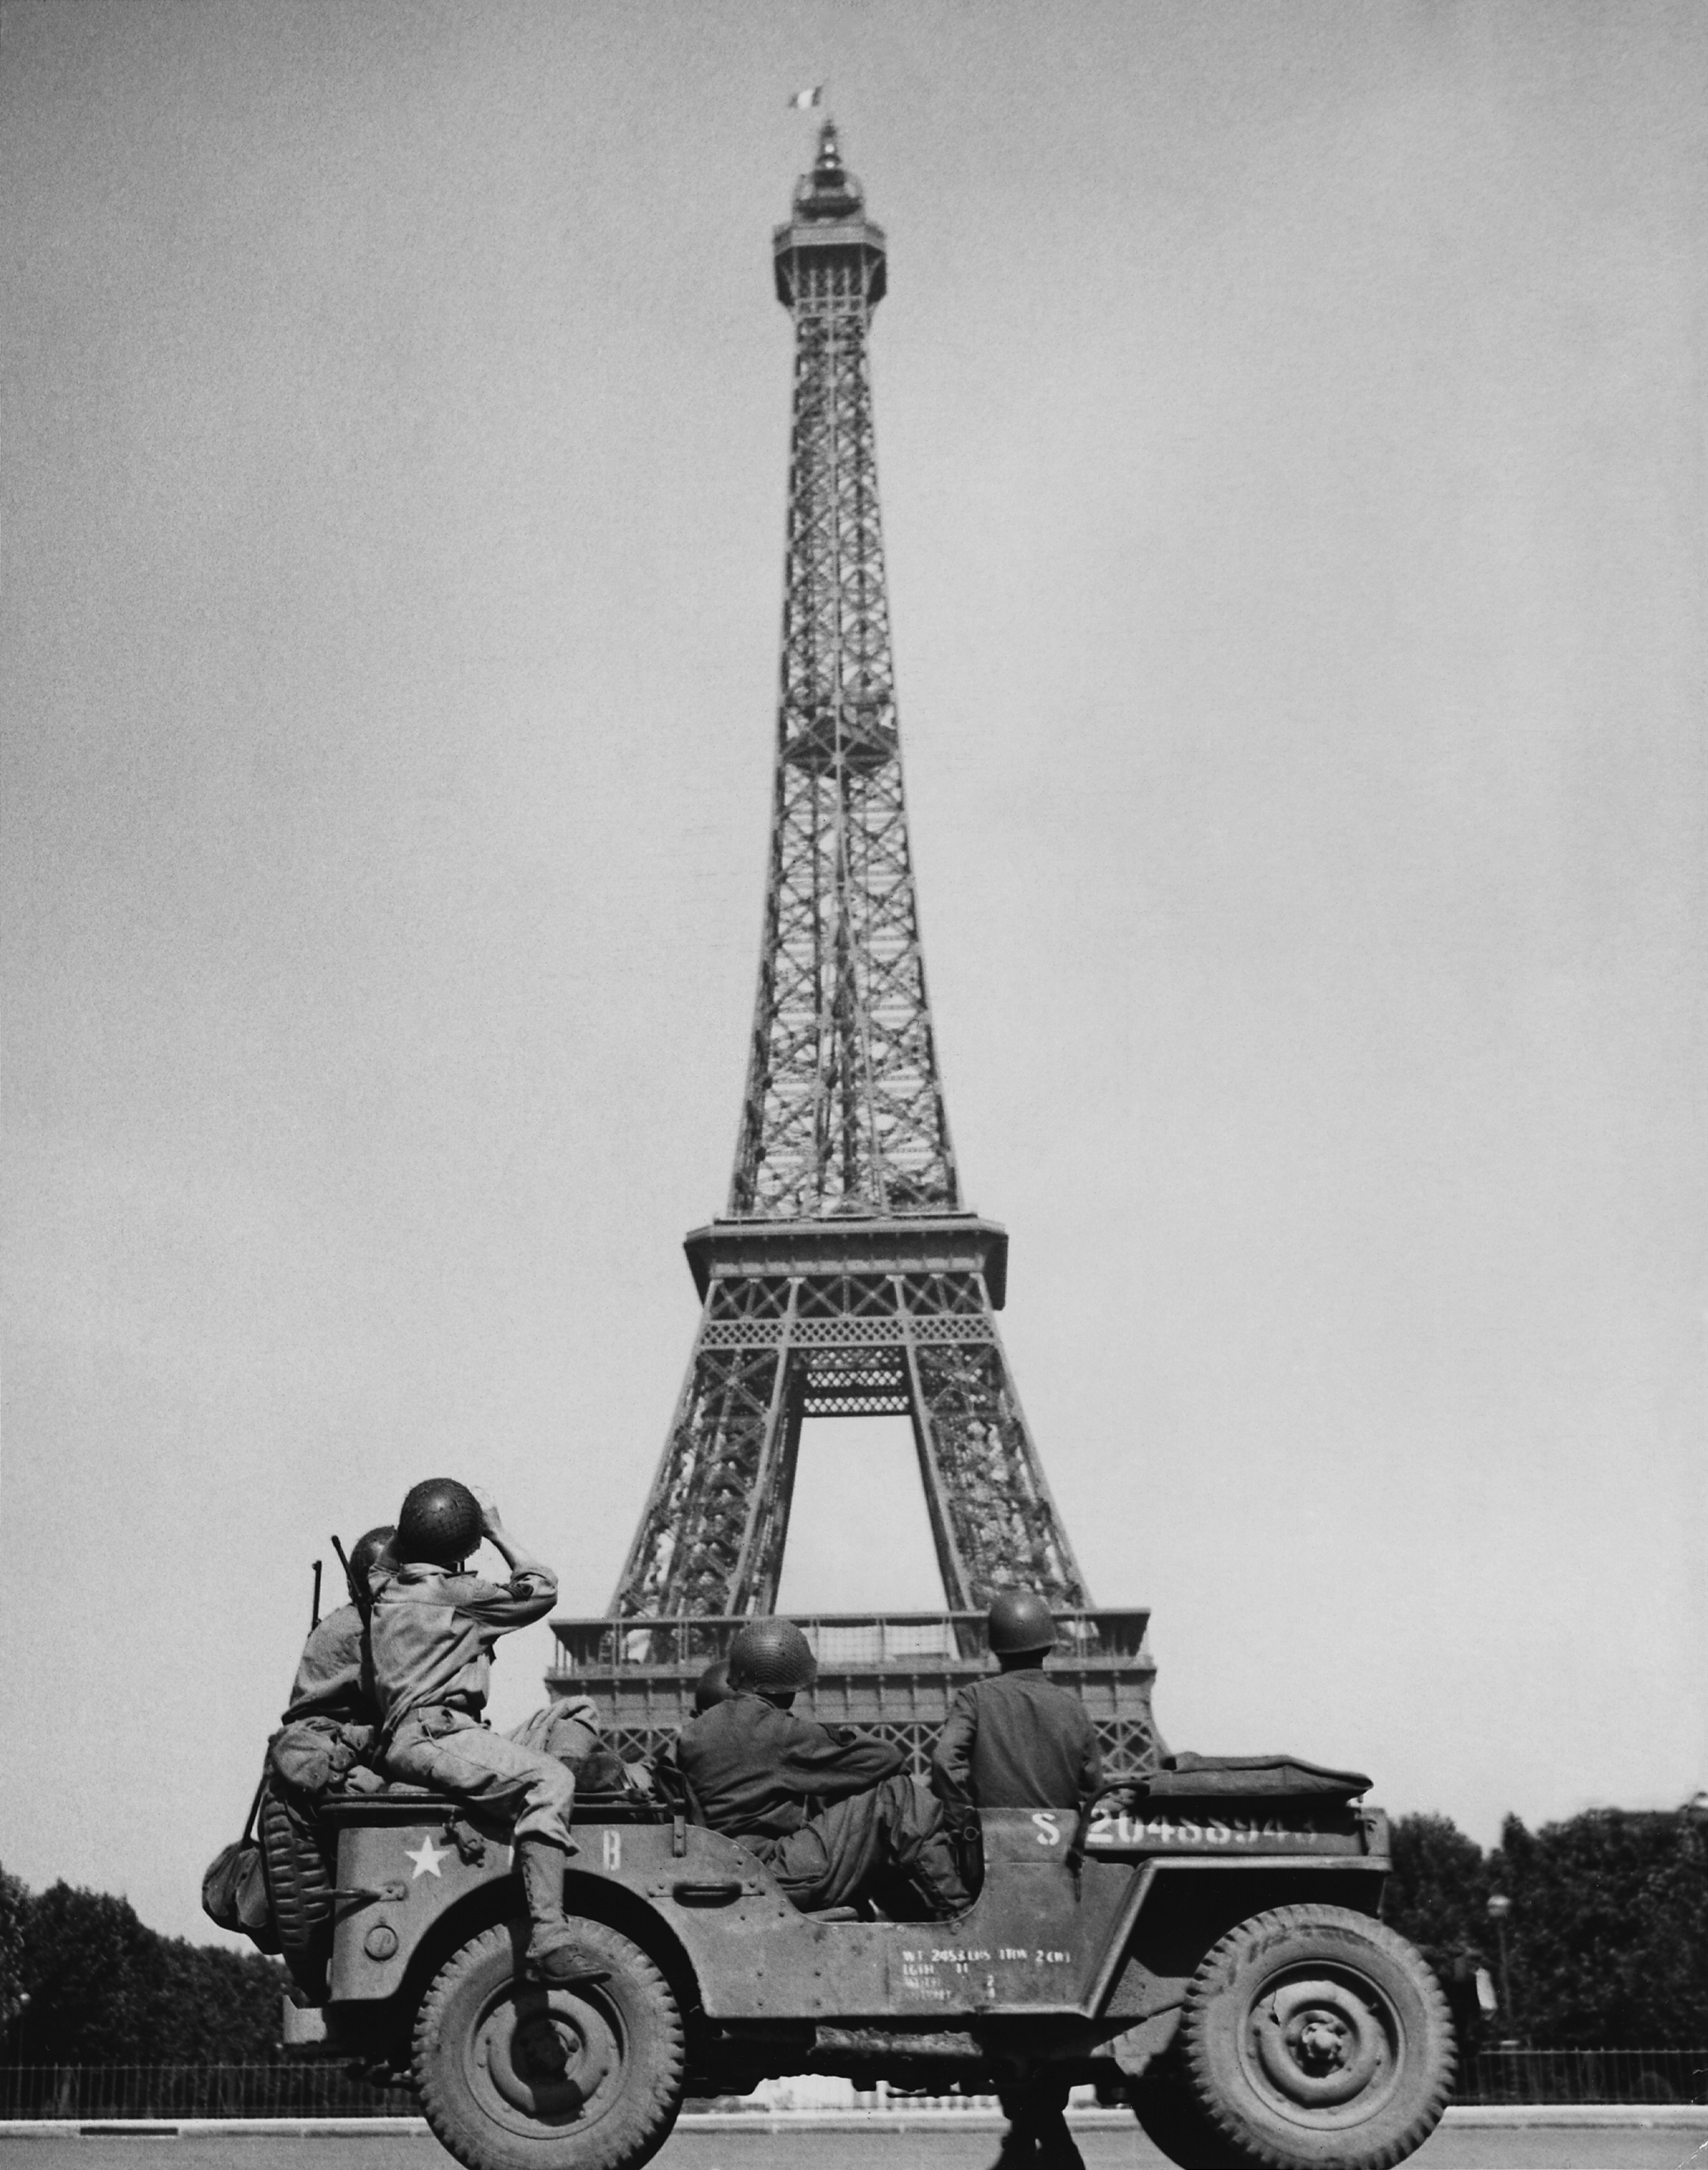 American soldiers watch as the French Tricolor flies from the Eiffel Tower again. Photo taken circa August 25, 1944. from the National Archives and Records Administration.